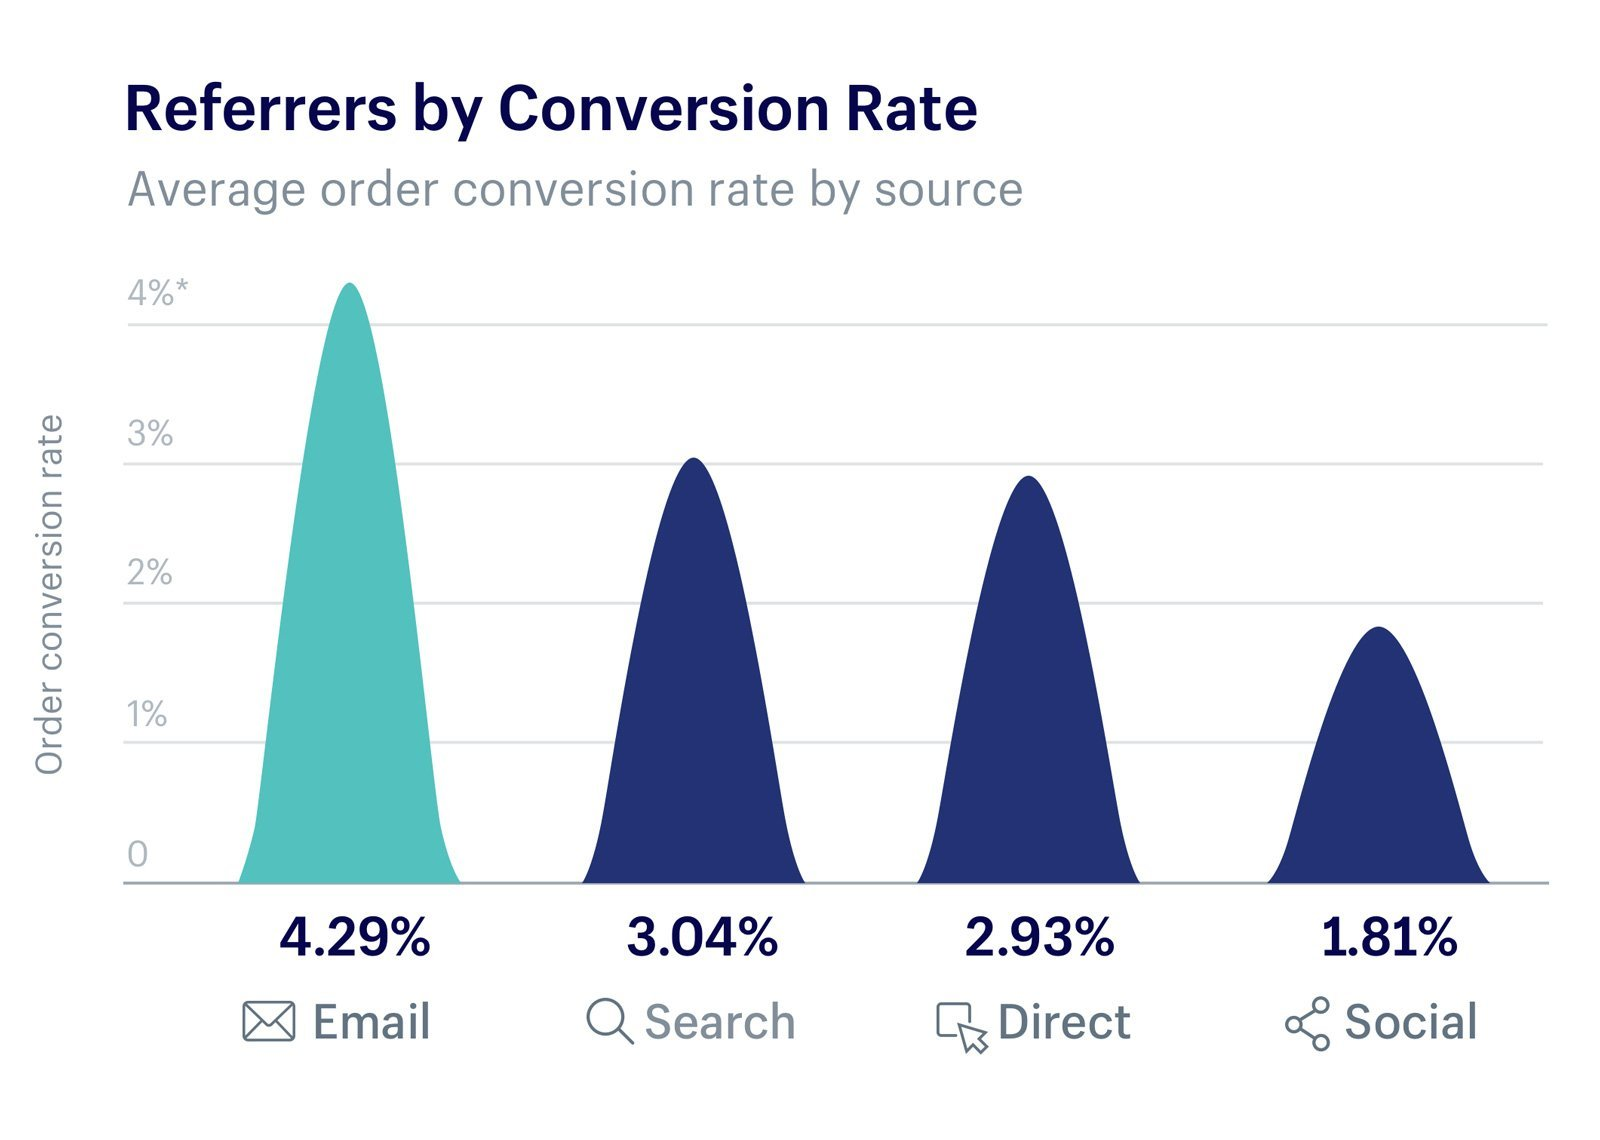 Conversion order rate for email marketing